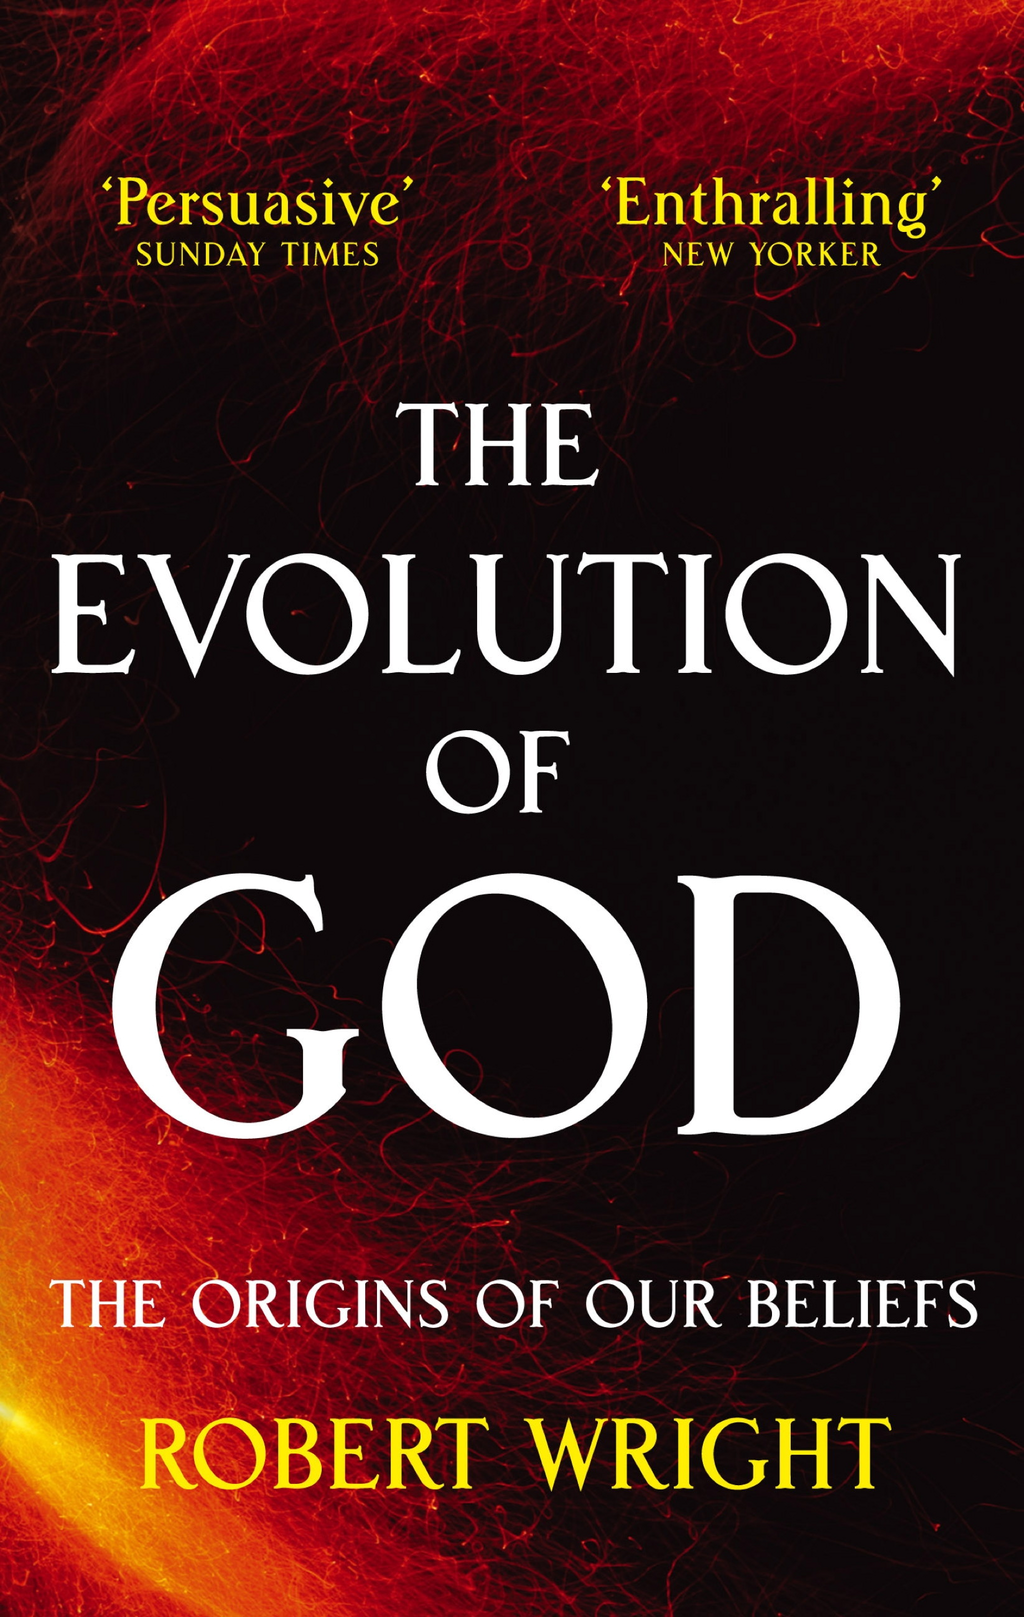 The Evolution of God The origins of our beliefs